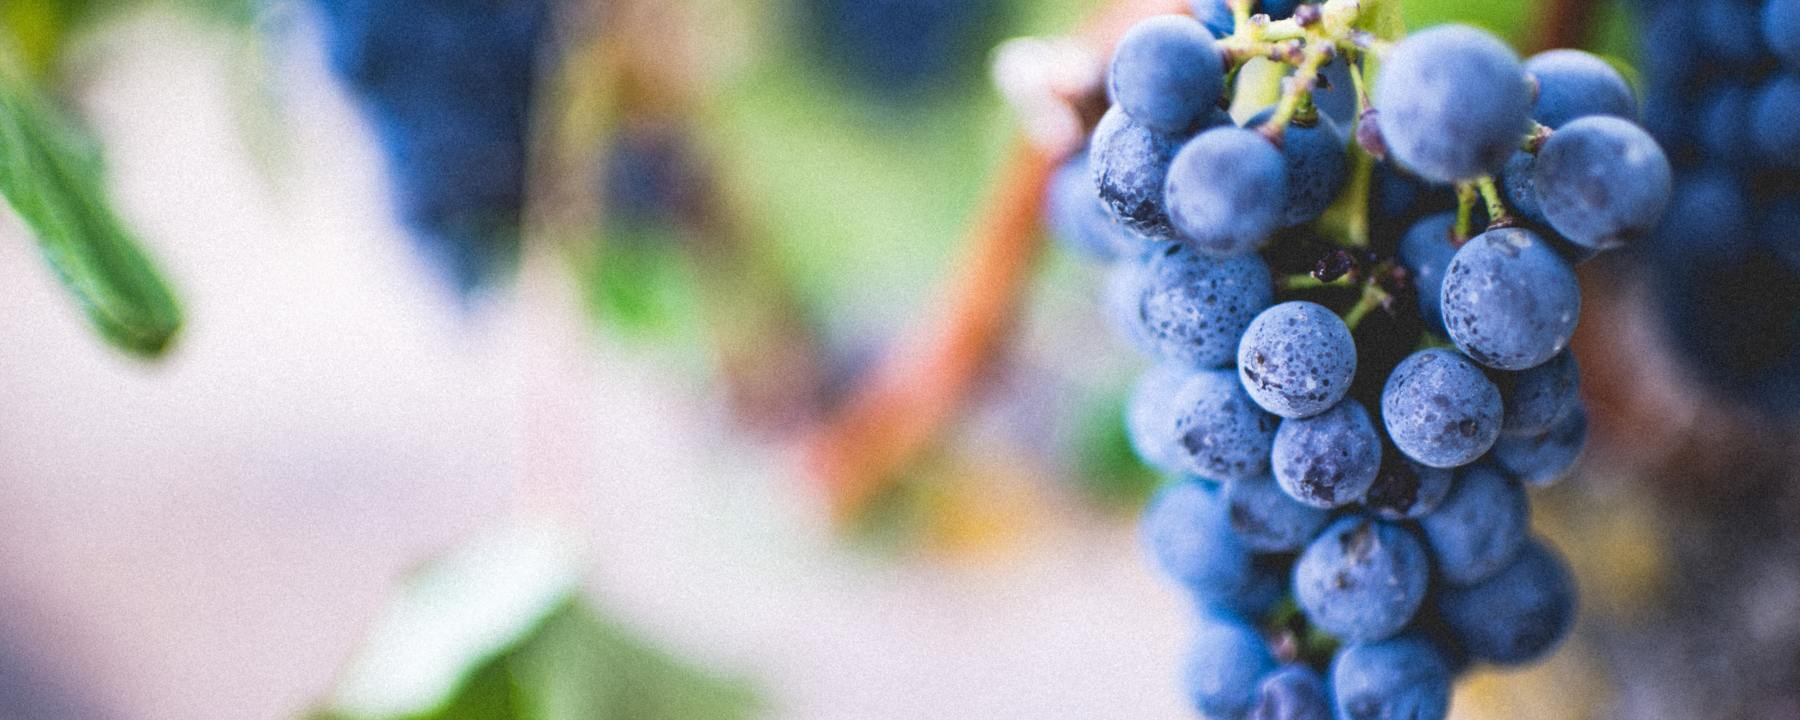 a cluster of grapes growing on a vine